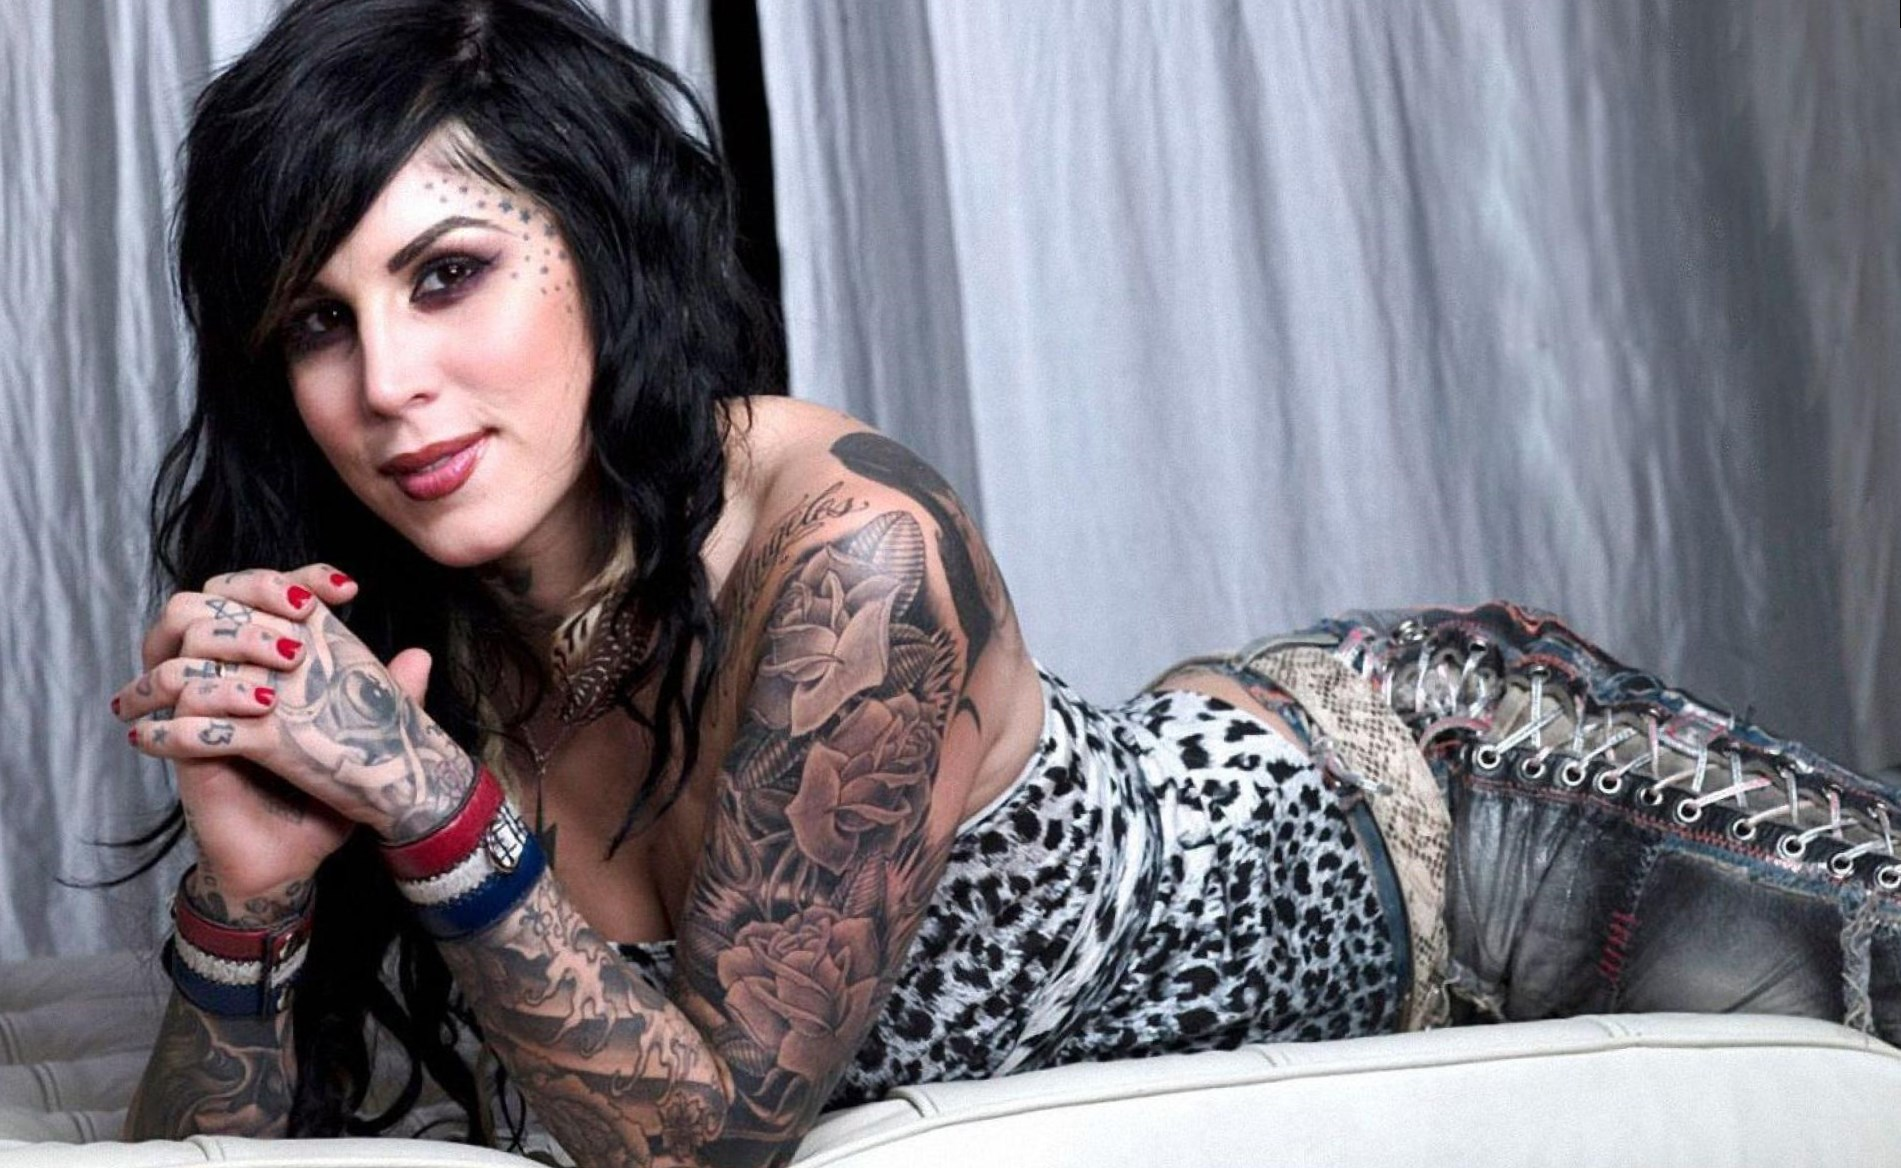 Celebrity kat von d plastic surgery photos video for Girl tattoo artist